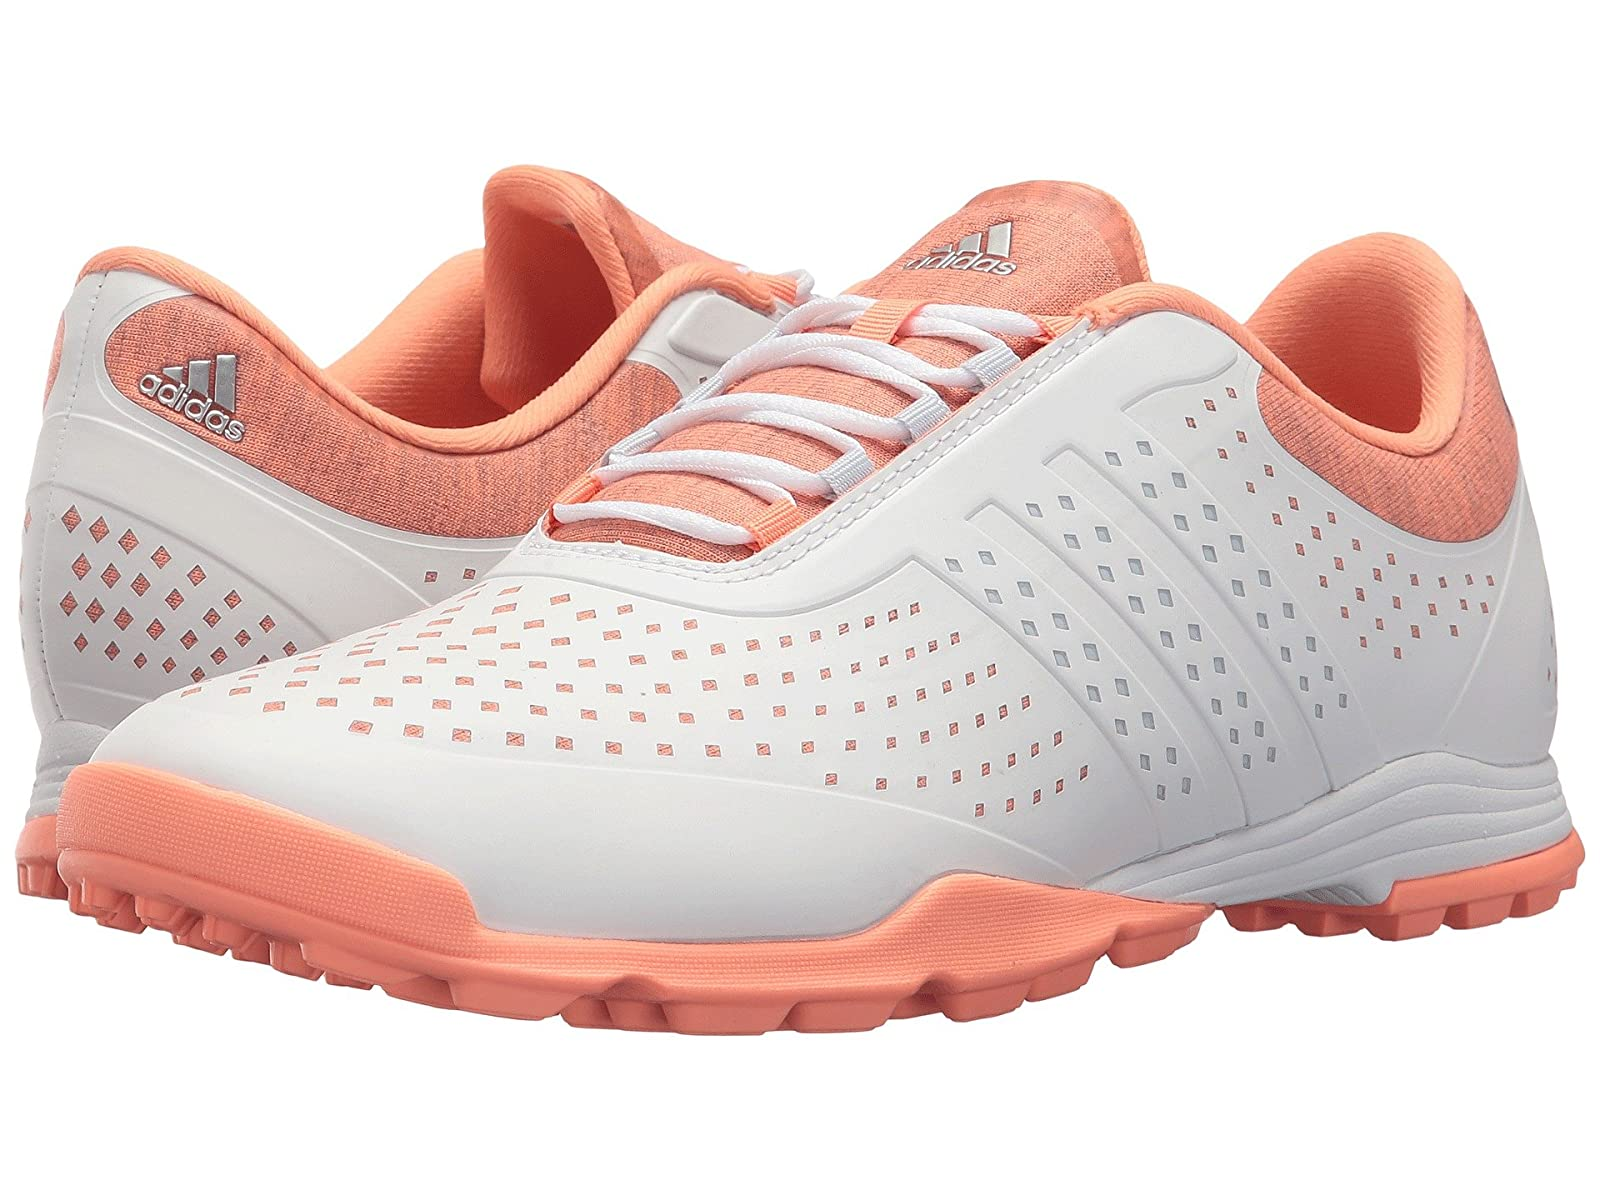 adidas Golf Adipure SportAtmospheric grades have affordable shoes